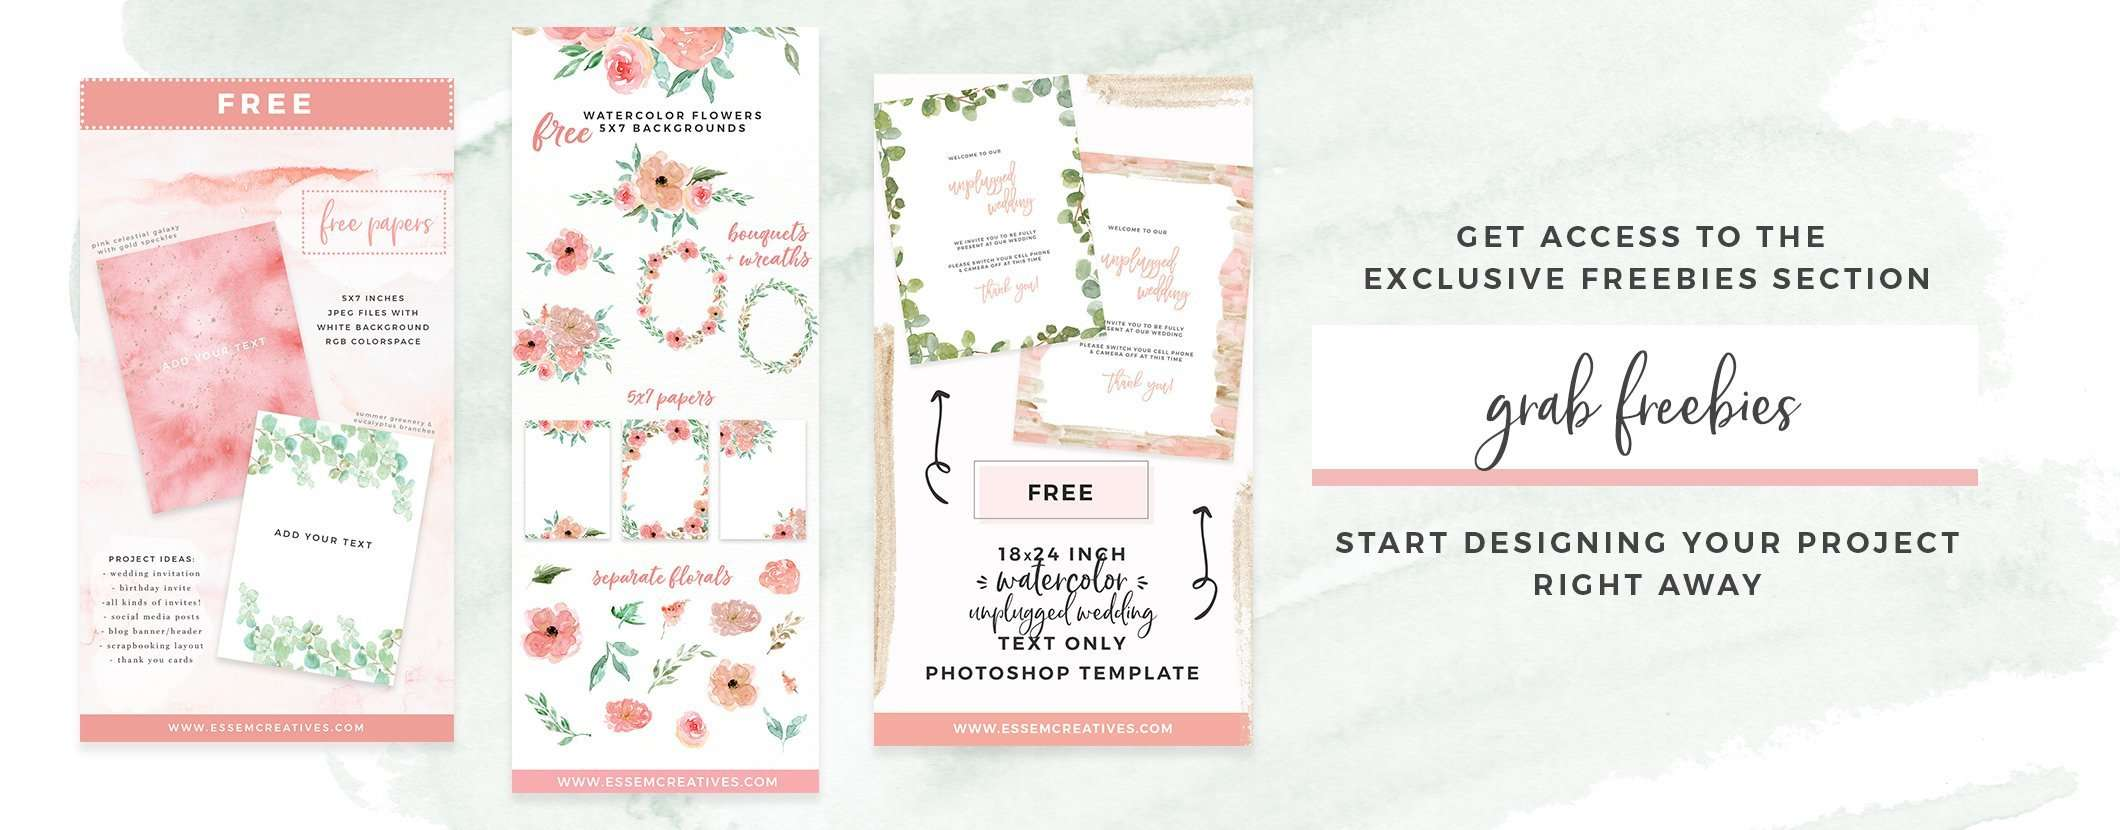 Free watercolor flower clipart, free wedding invitation template, free watercolor backgrounds & borders